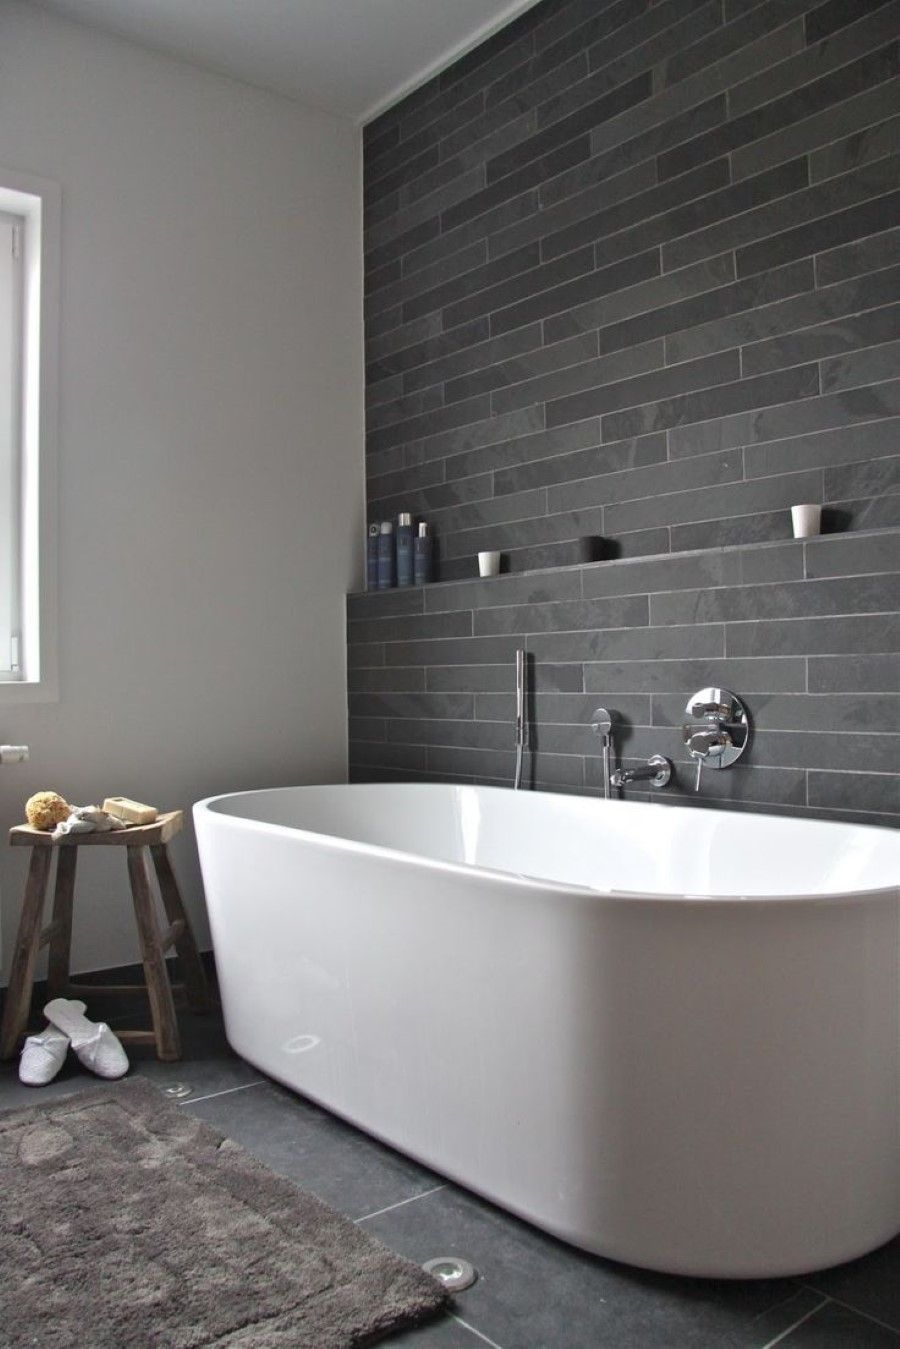 Bathroom Compact Grey Wall Tile Accent Background Paired With Big White Freestanding Tub Beside Wooden Bench